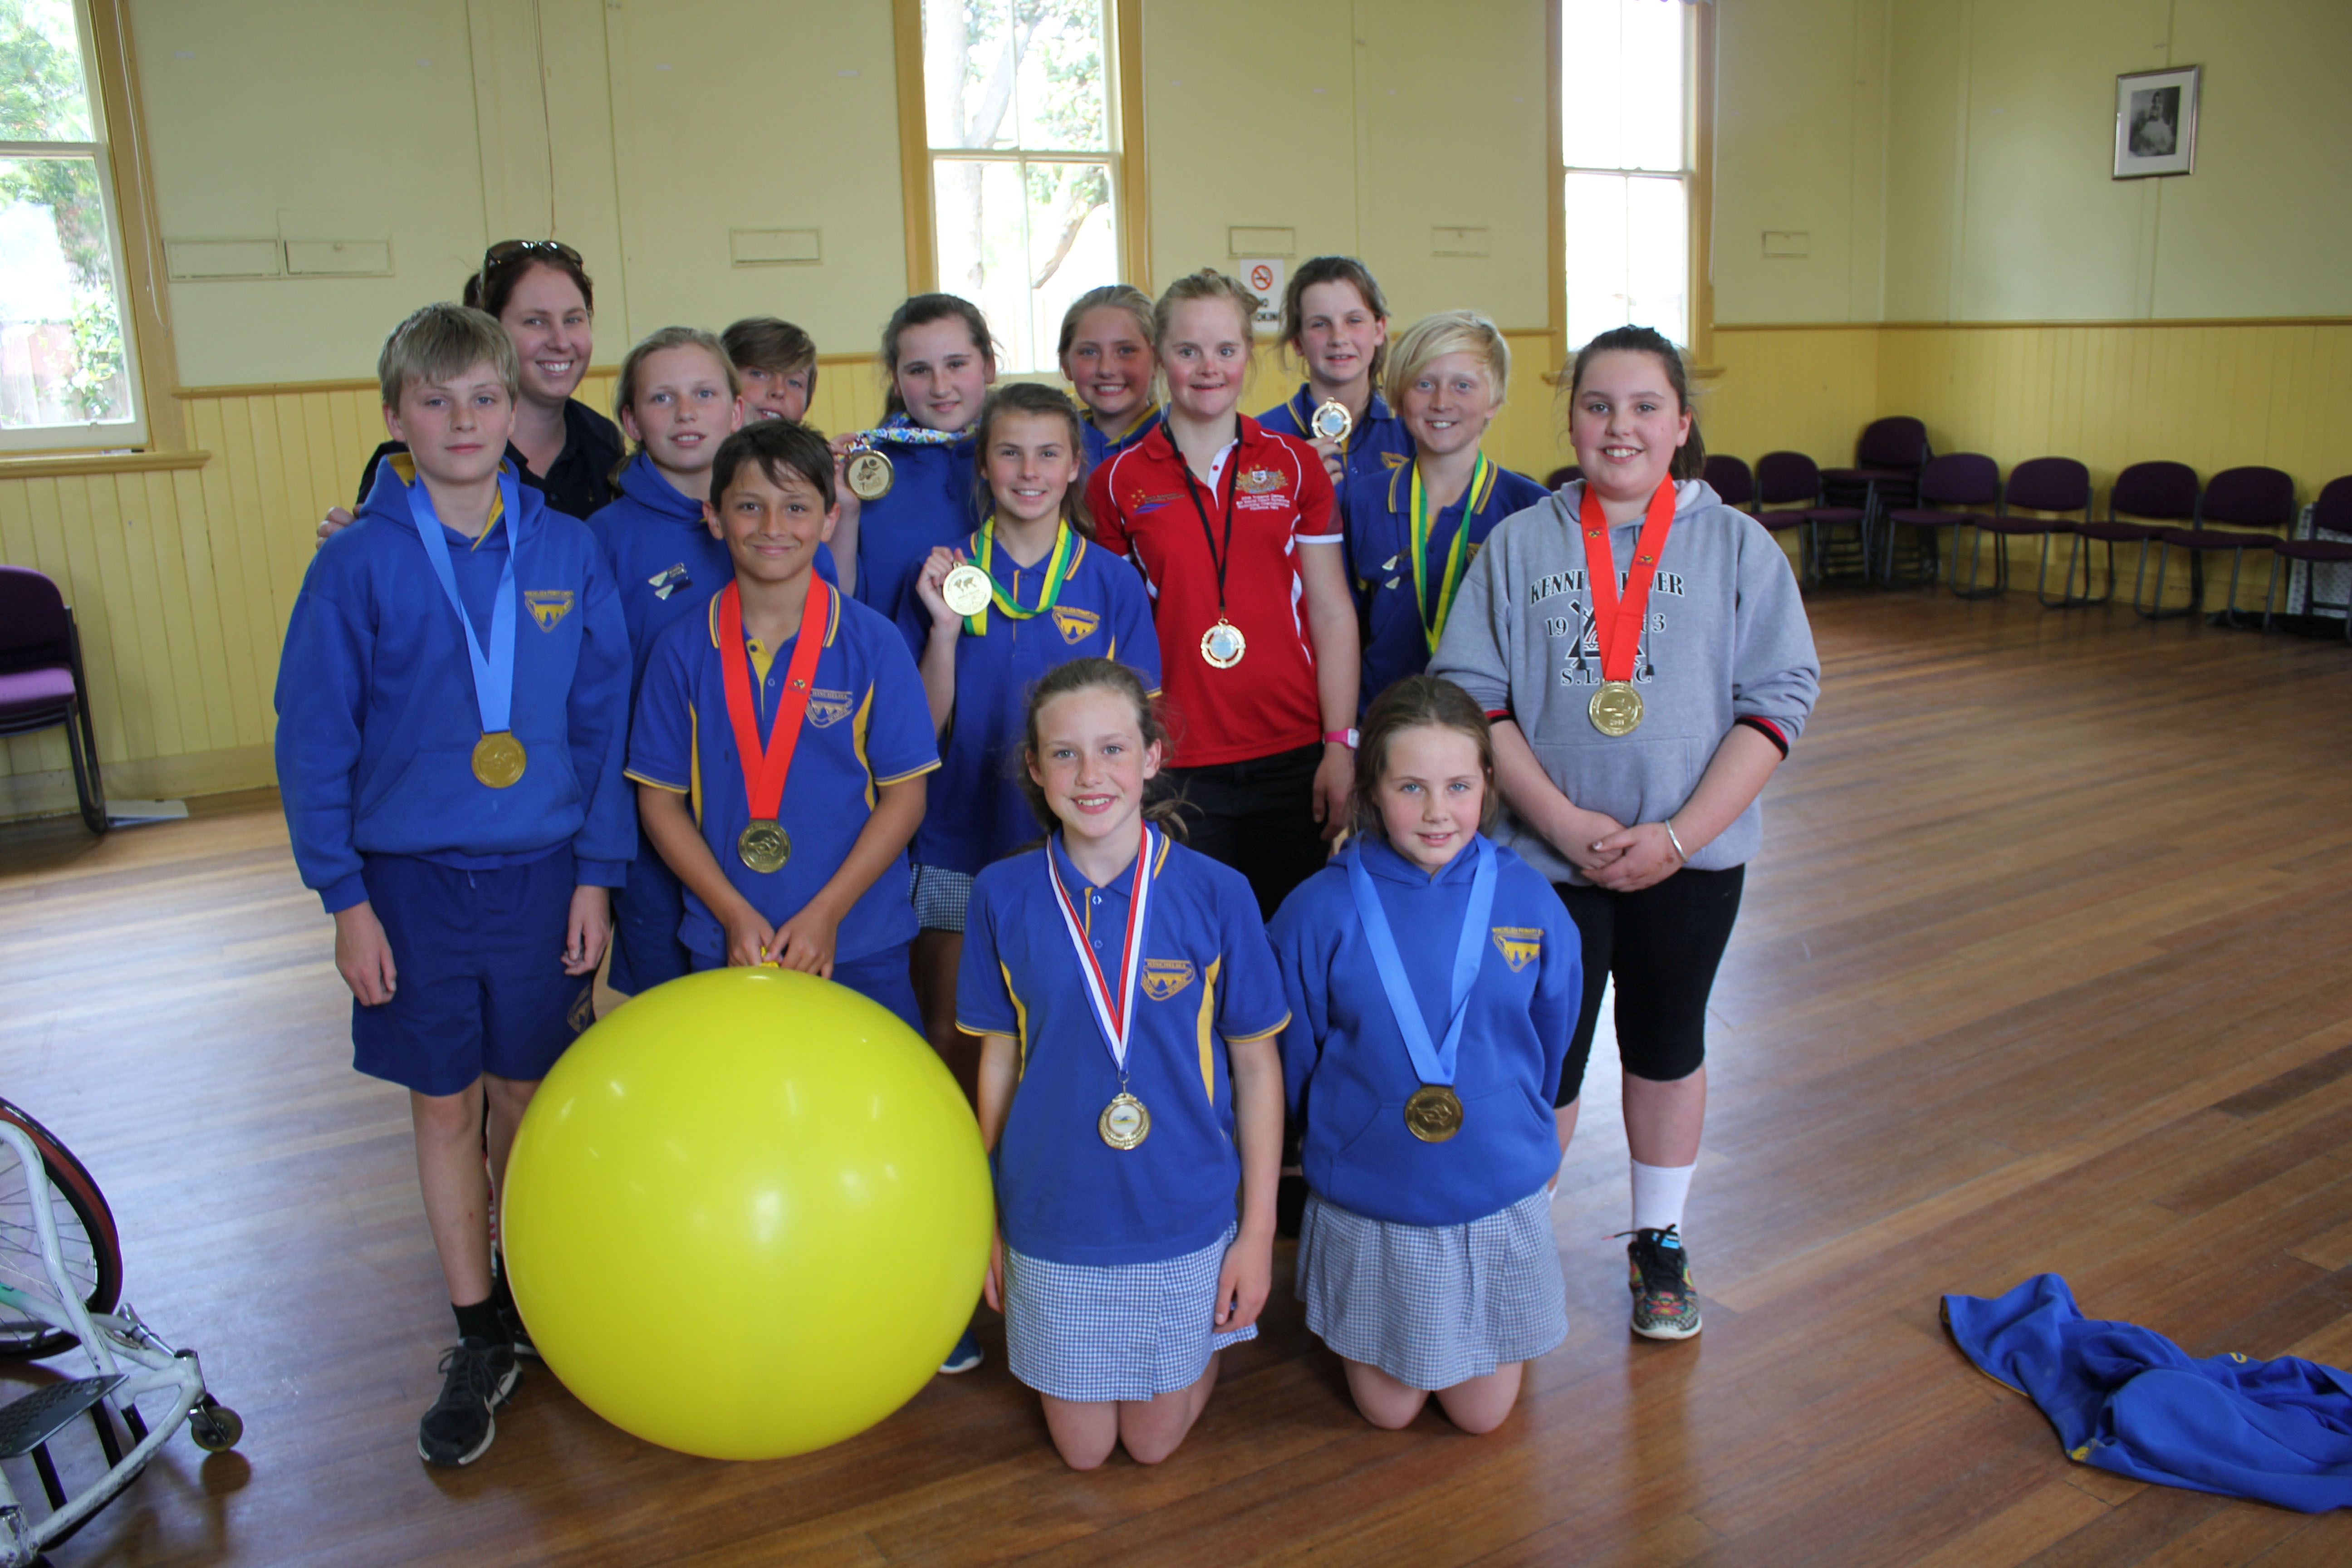 Group photos of Winchelsea primary school students with Phoebe